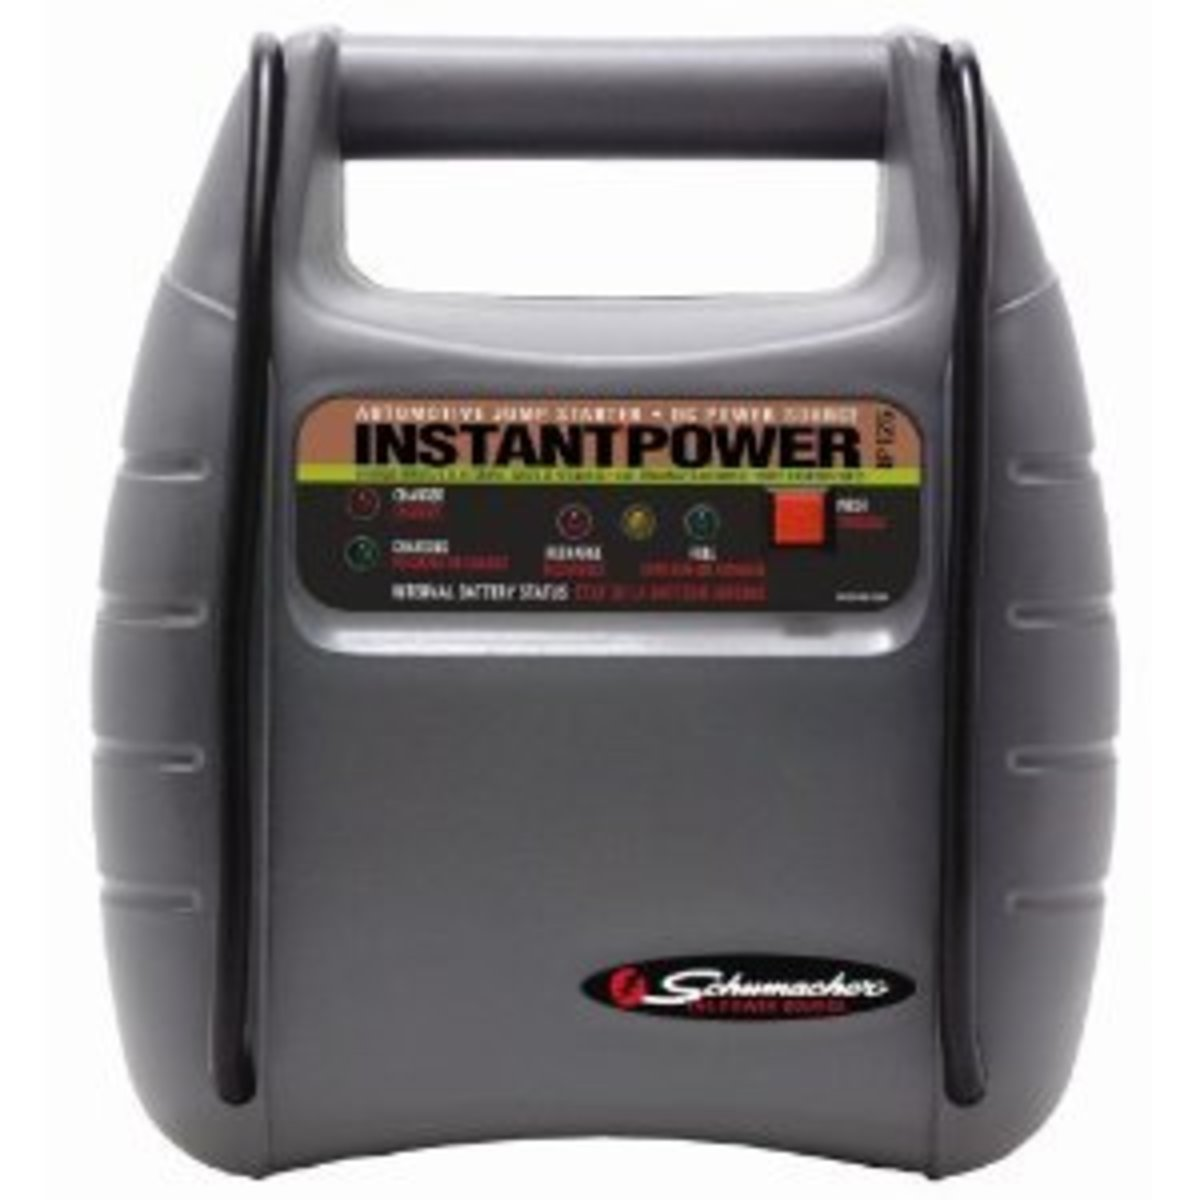 Schumacher IP-125 Instant Power Jump Starter With 12 Amp Hour Battery